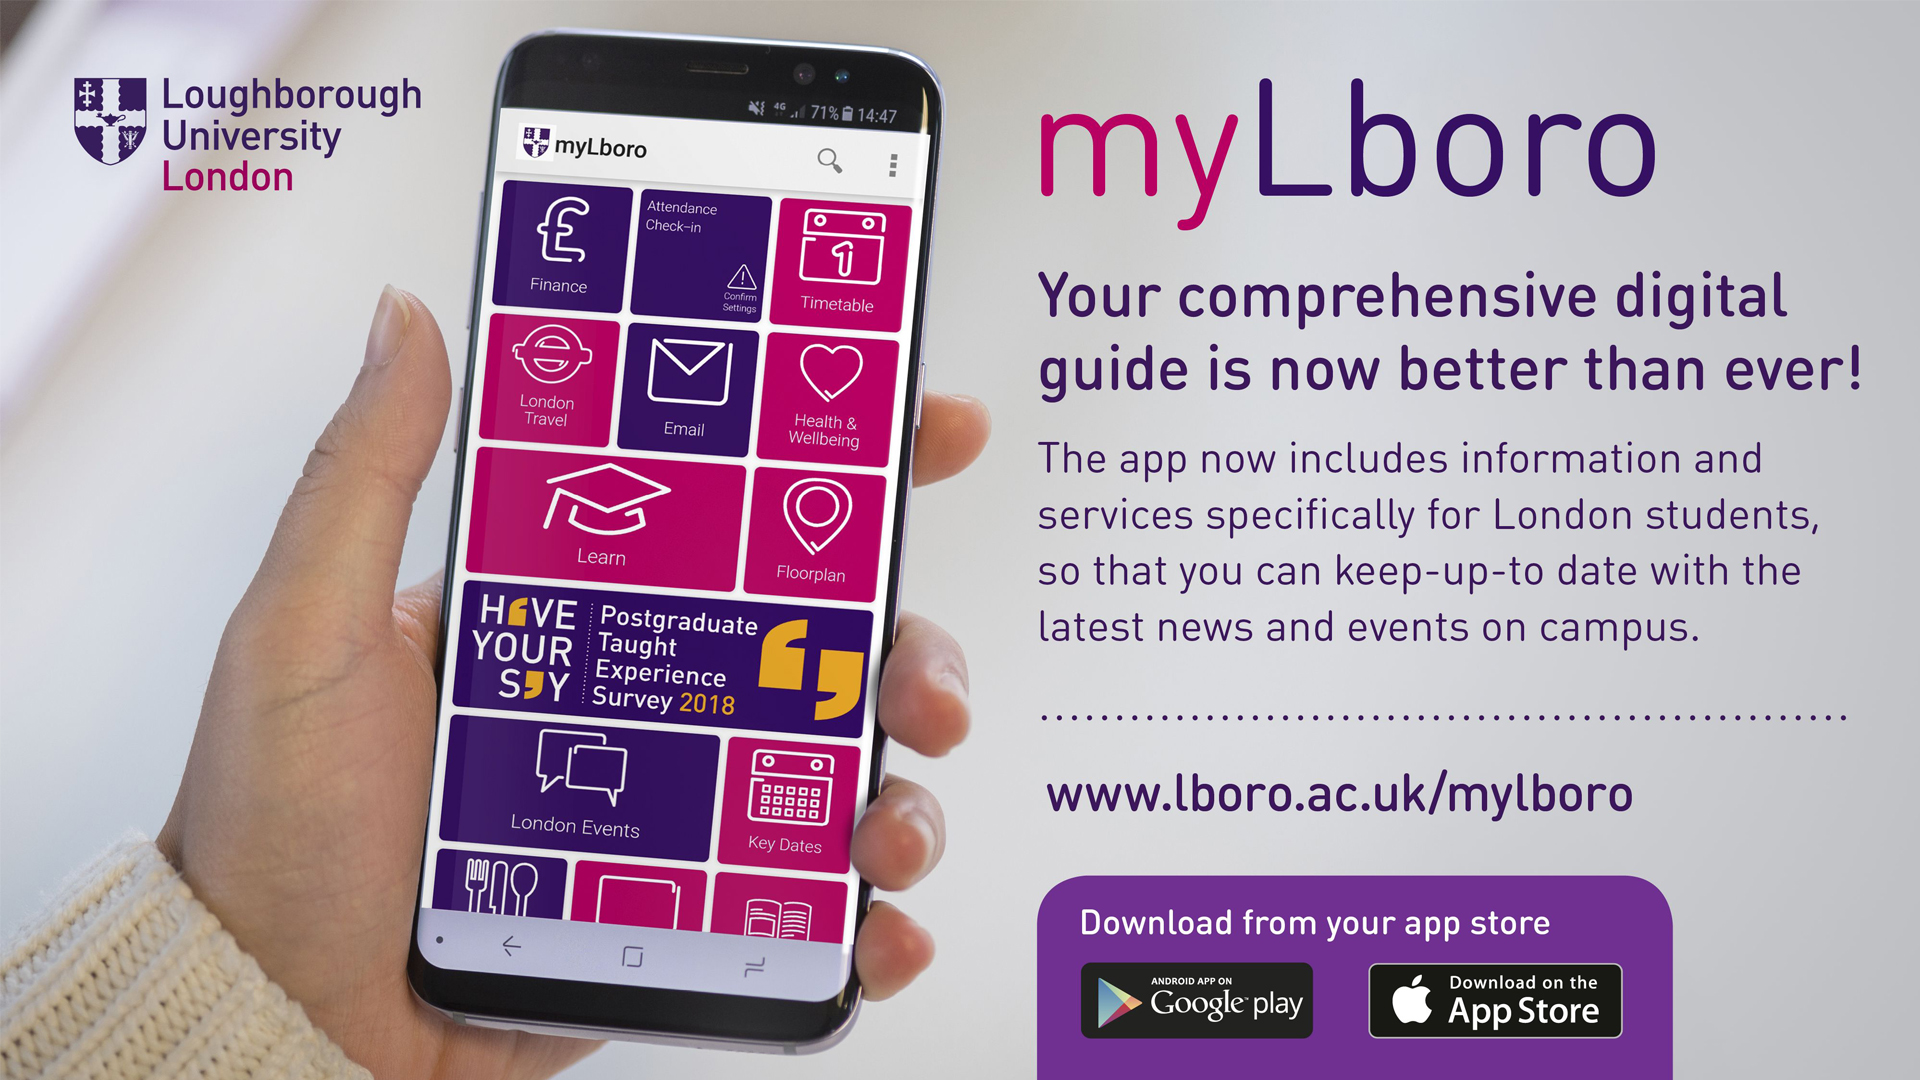 5 reasons why you should download the myLboro app